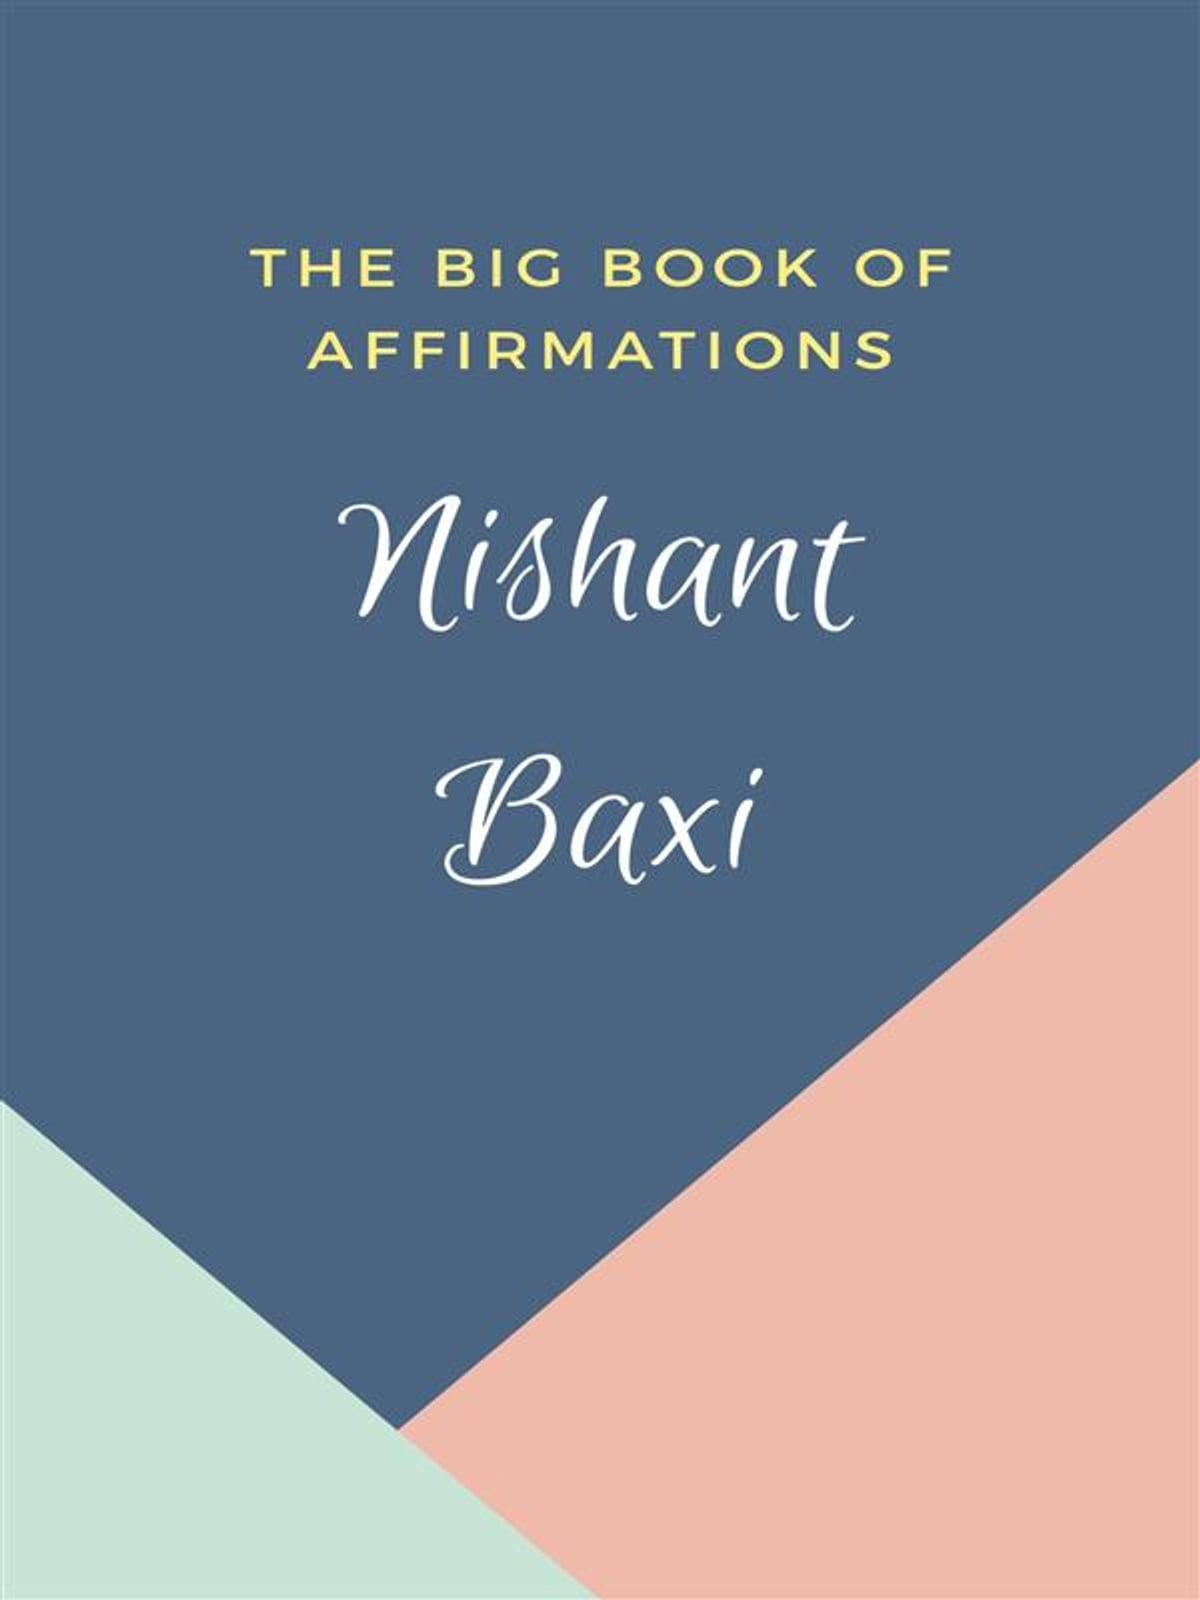 The Big Book Of Affirmations ebook by Nishant Baxi - Rakuten Kobo